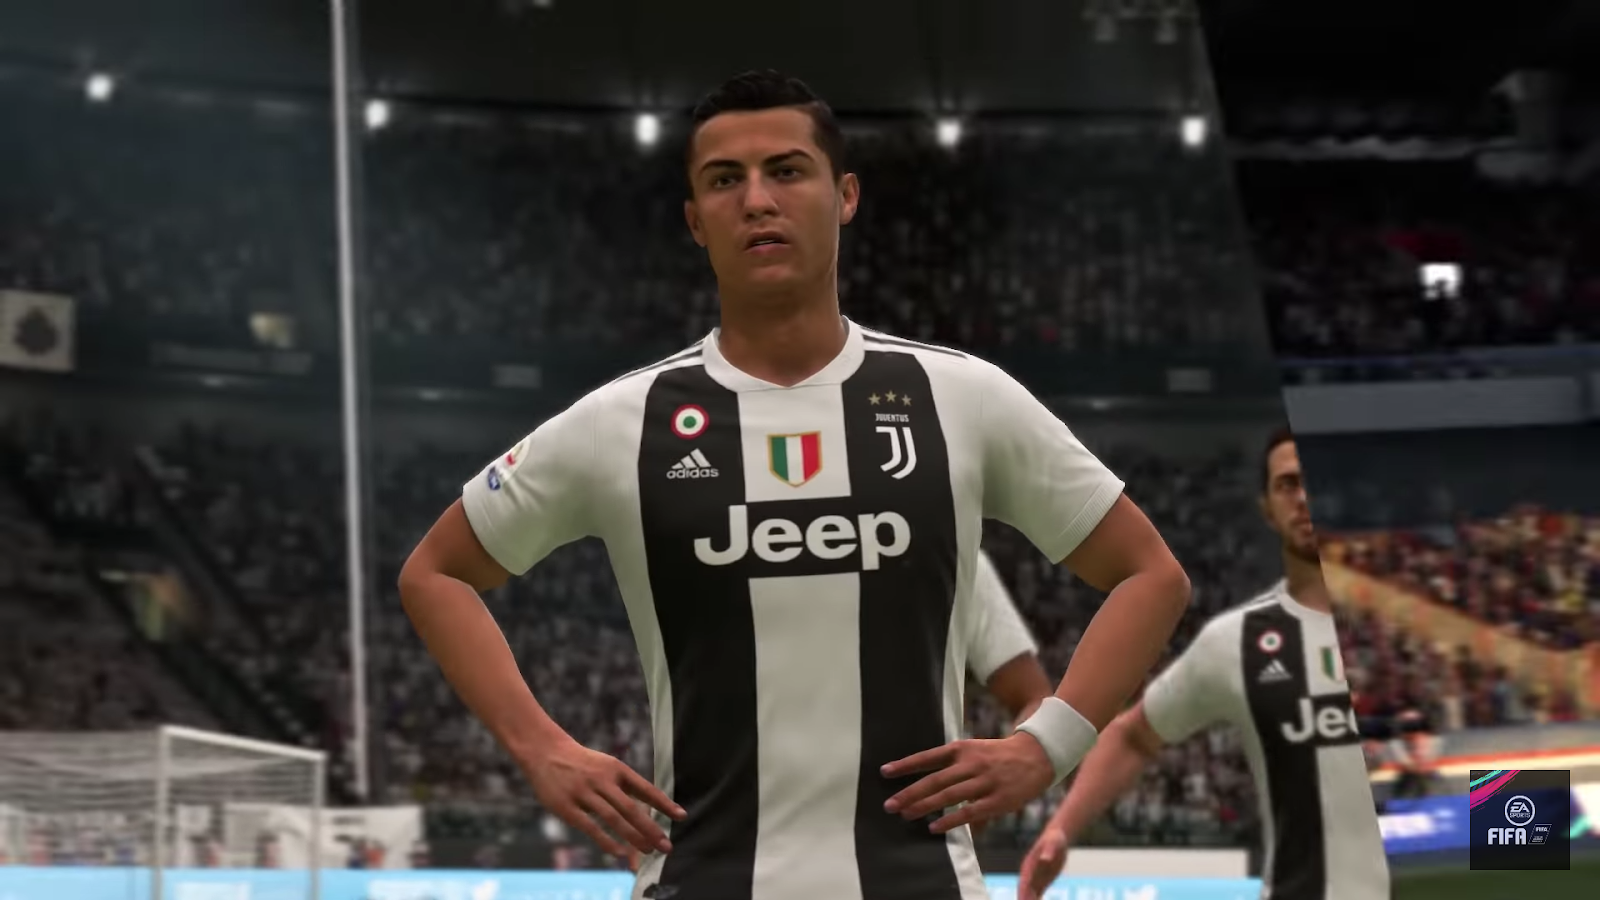 Fifa 19 Version 1.08 For PS4 Xbox One And PC Full Patch Notes